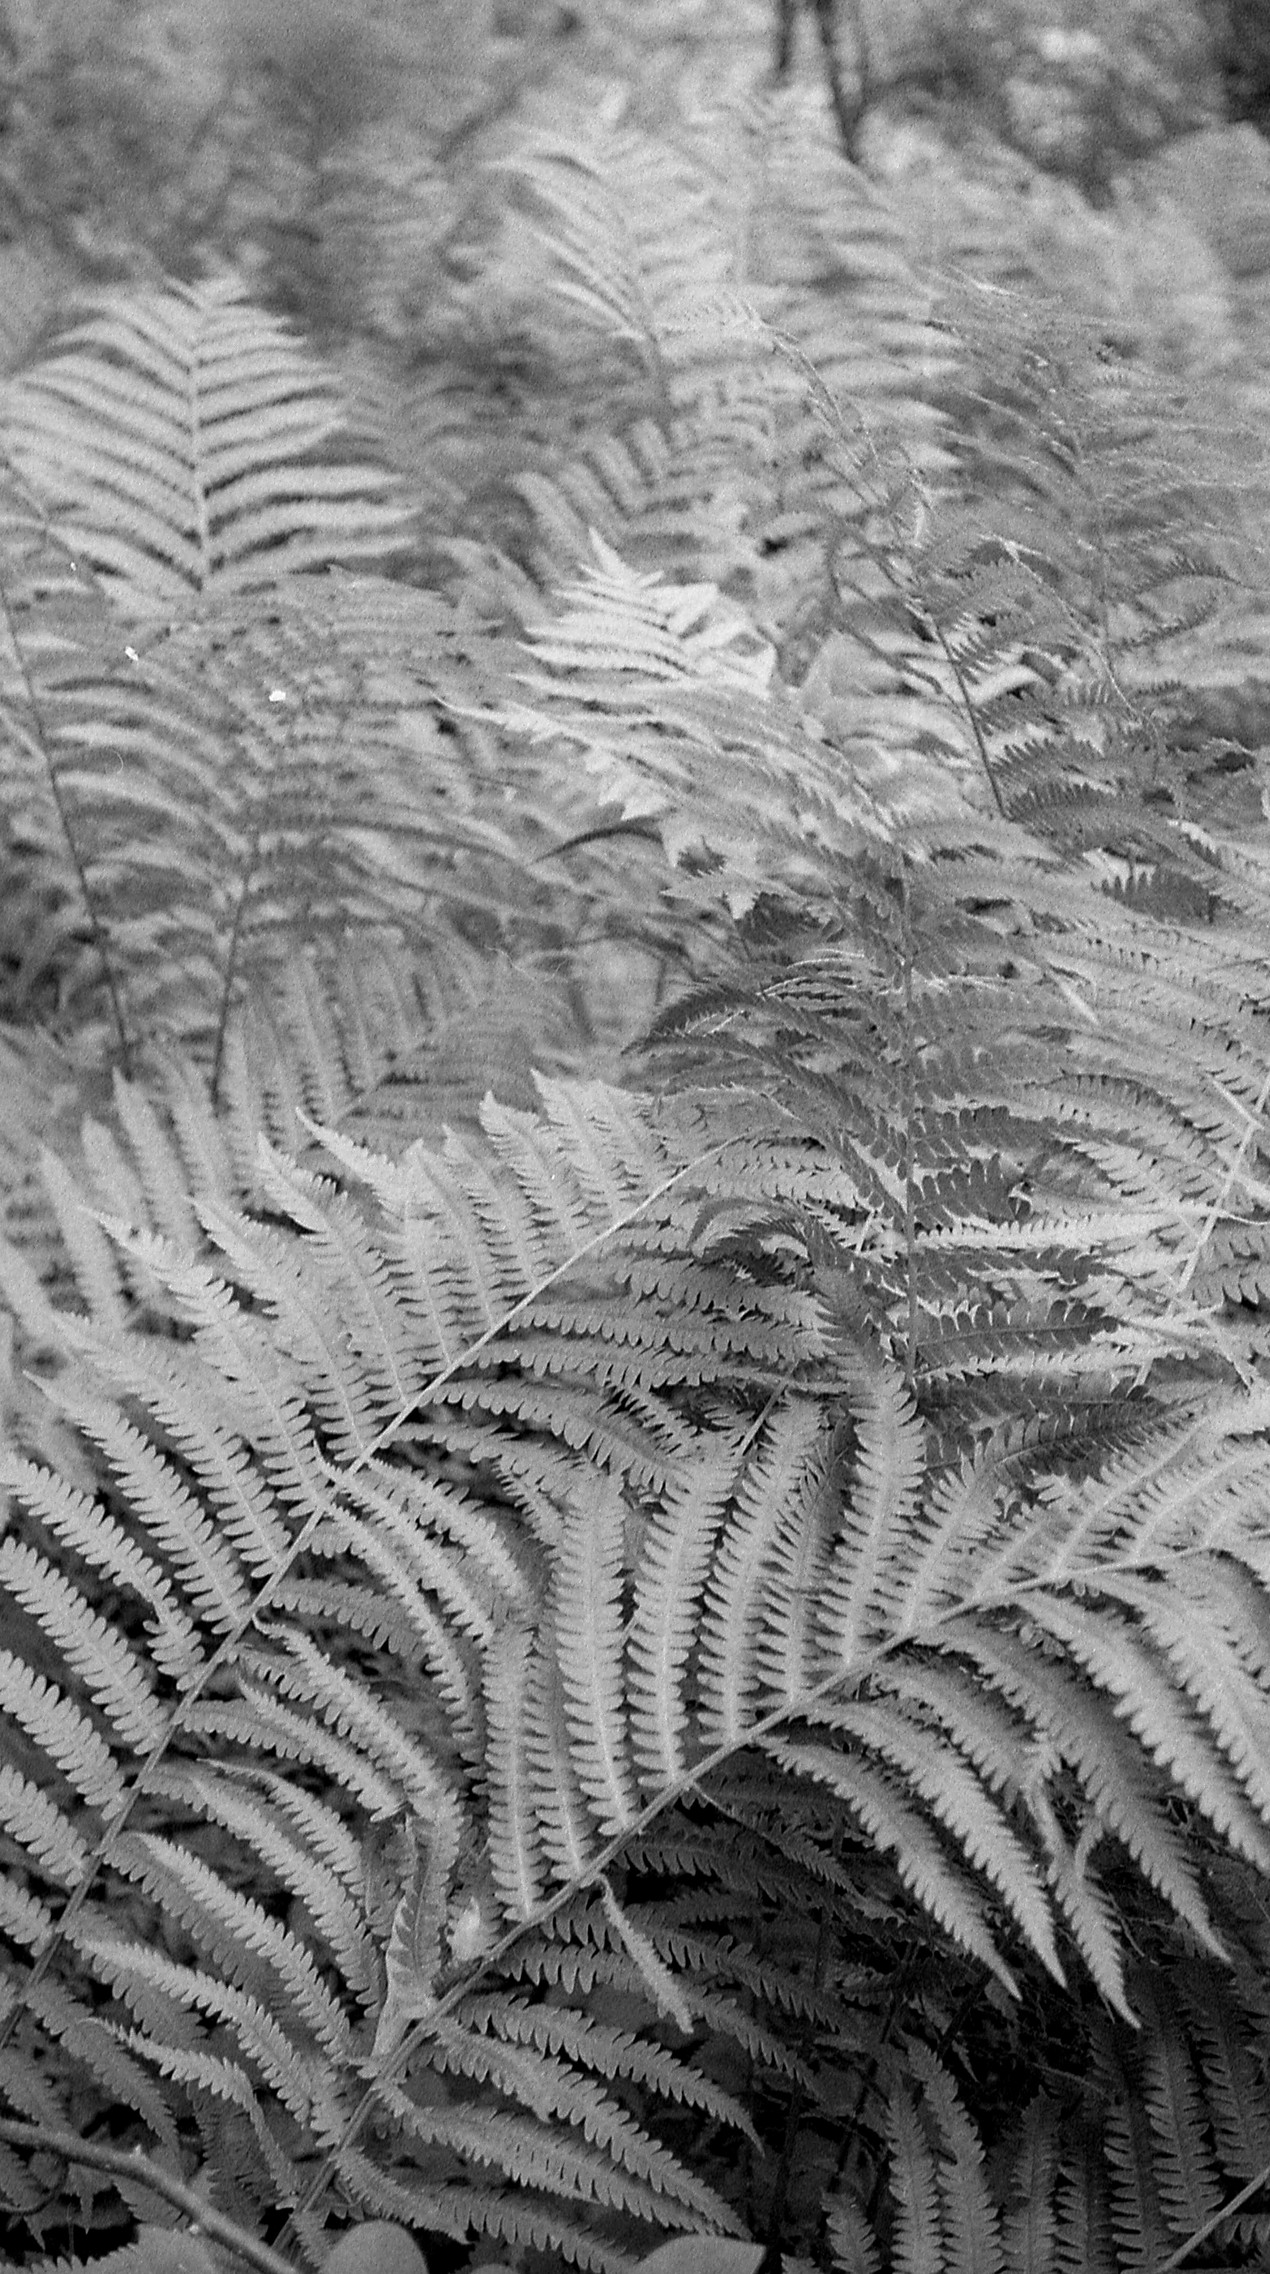 Fern in the forest.